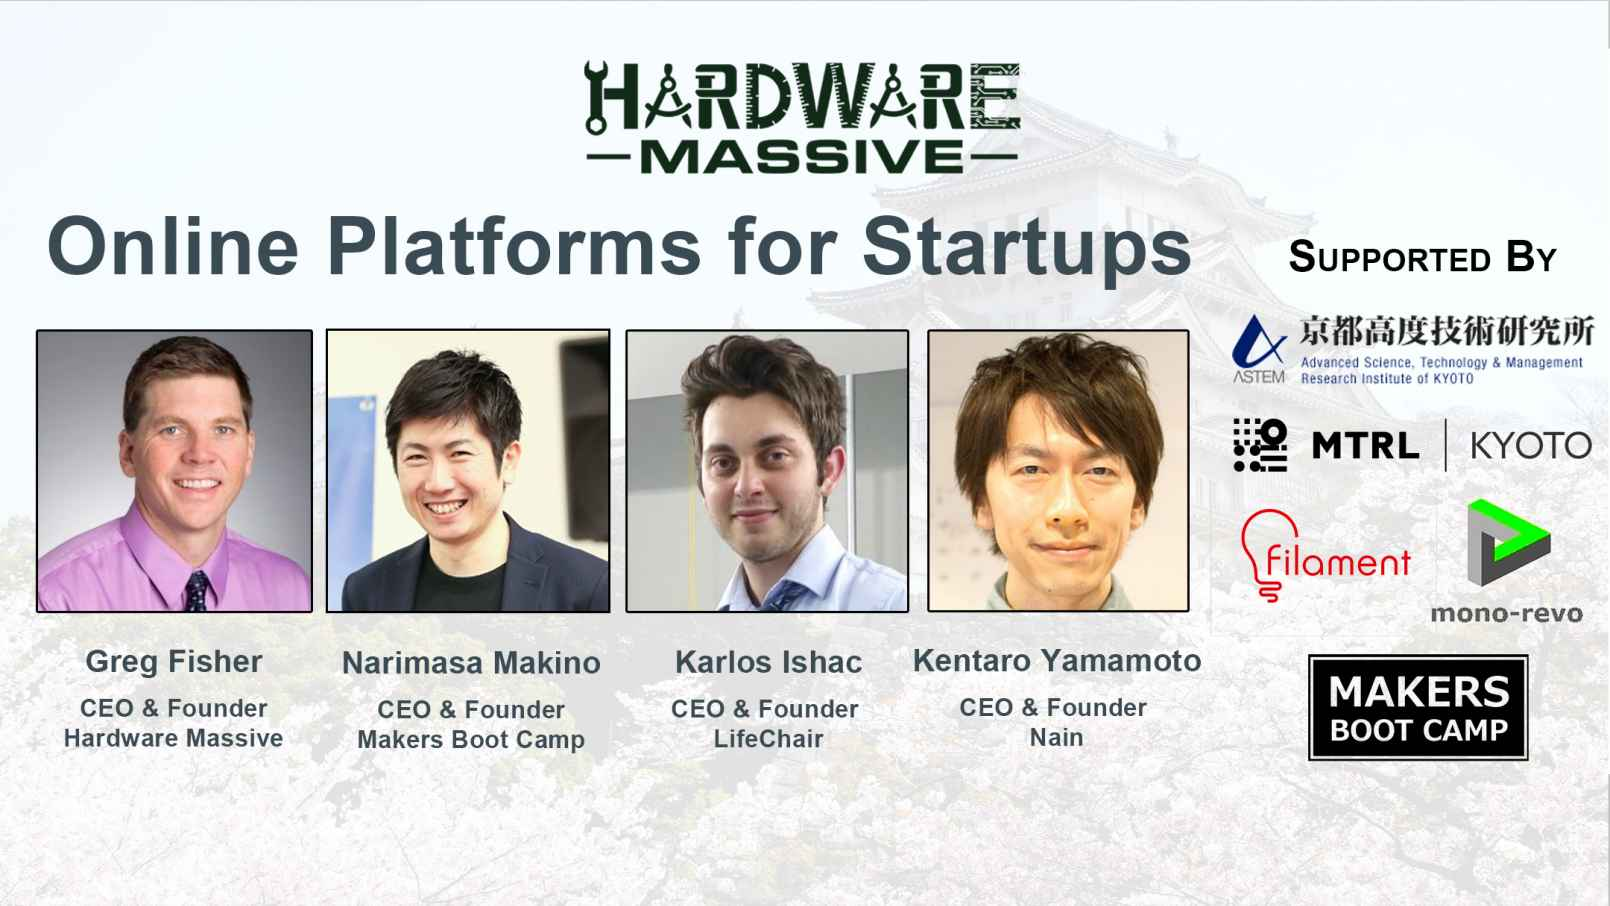 2017-05-18,P20Greg,P20Fisher,P20,P2B,P20Narisama,P20Makino,P20,P28Online,P20Platforms,P20for,P20Startups,P29,P20banner_0.jpg.pagespeed.ce.FzUV59d_18